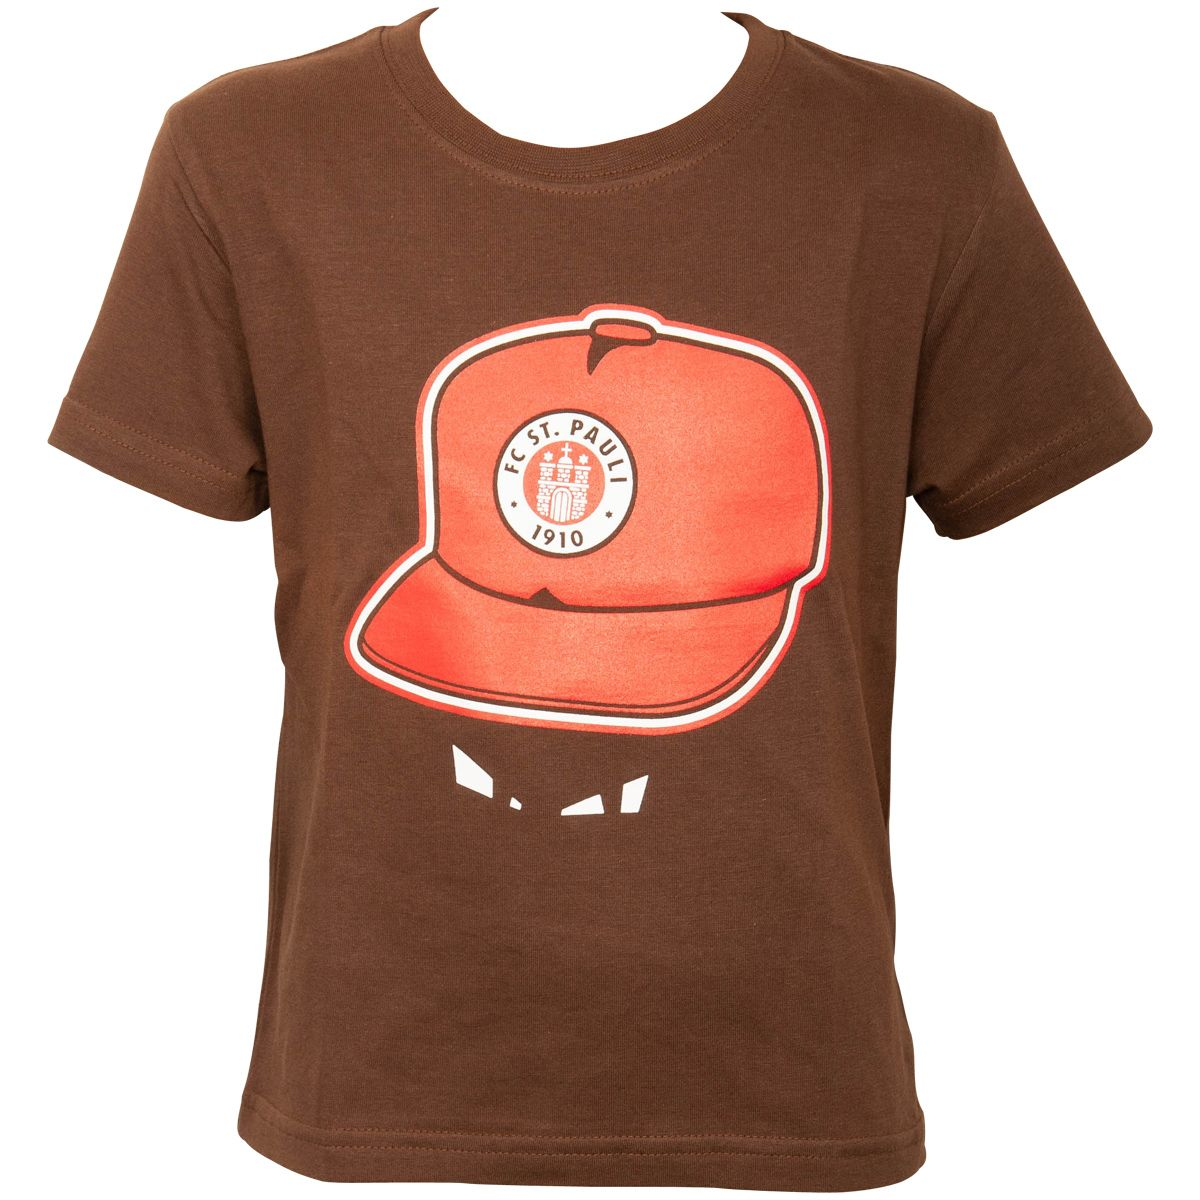 Sweet FC St. Pauli shirts and merchandise for Kids and babys 10424393b